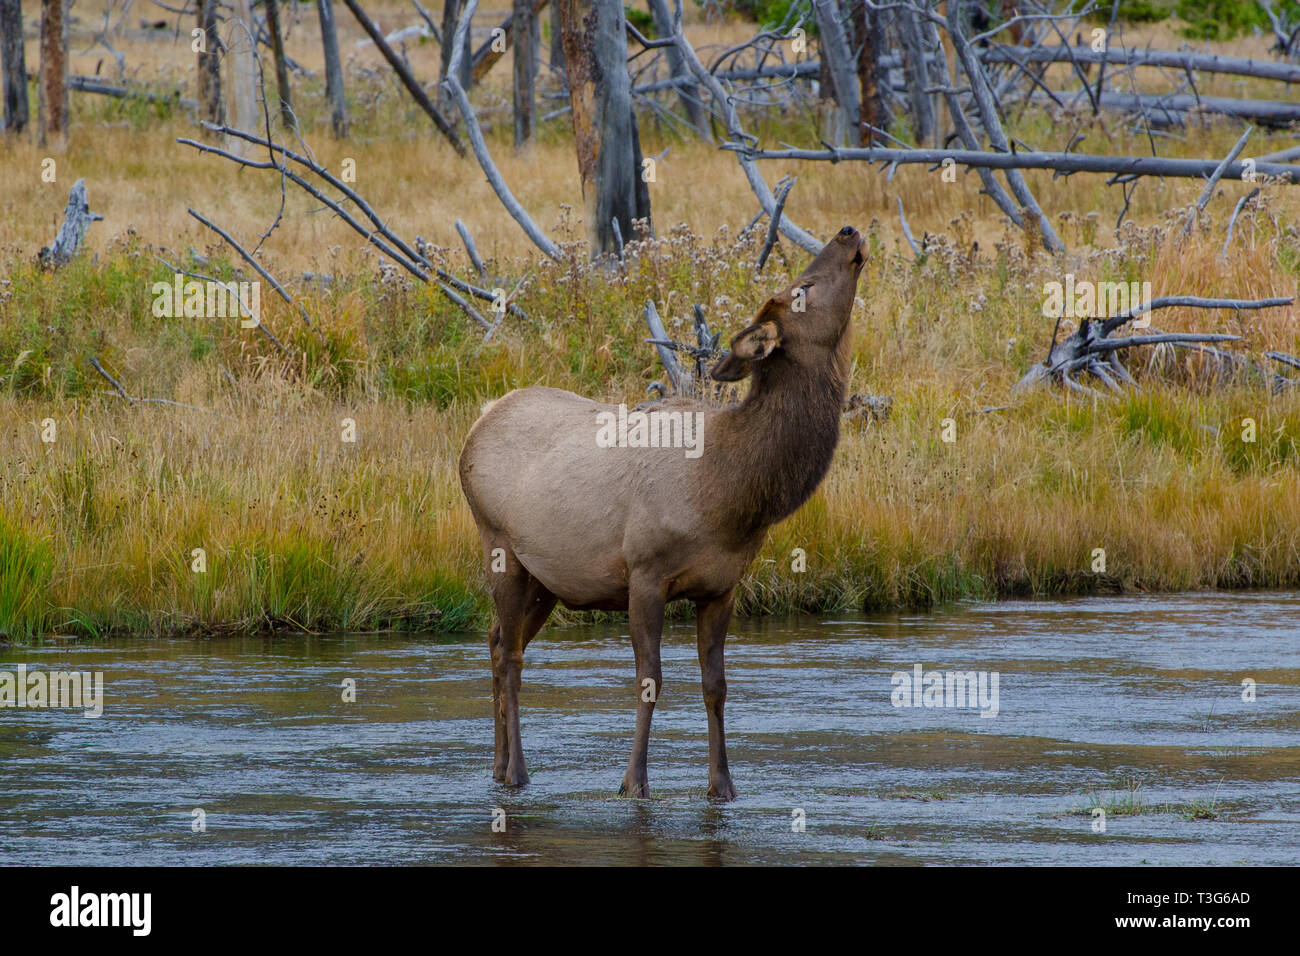 Wild Female Elk pausing Midstream while Crossing Madison River in Yellowstone - Stock Image